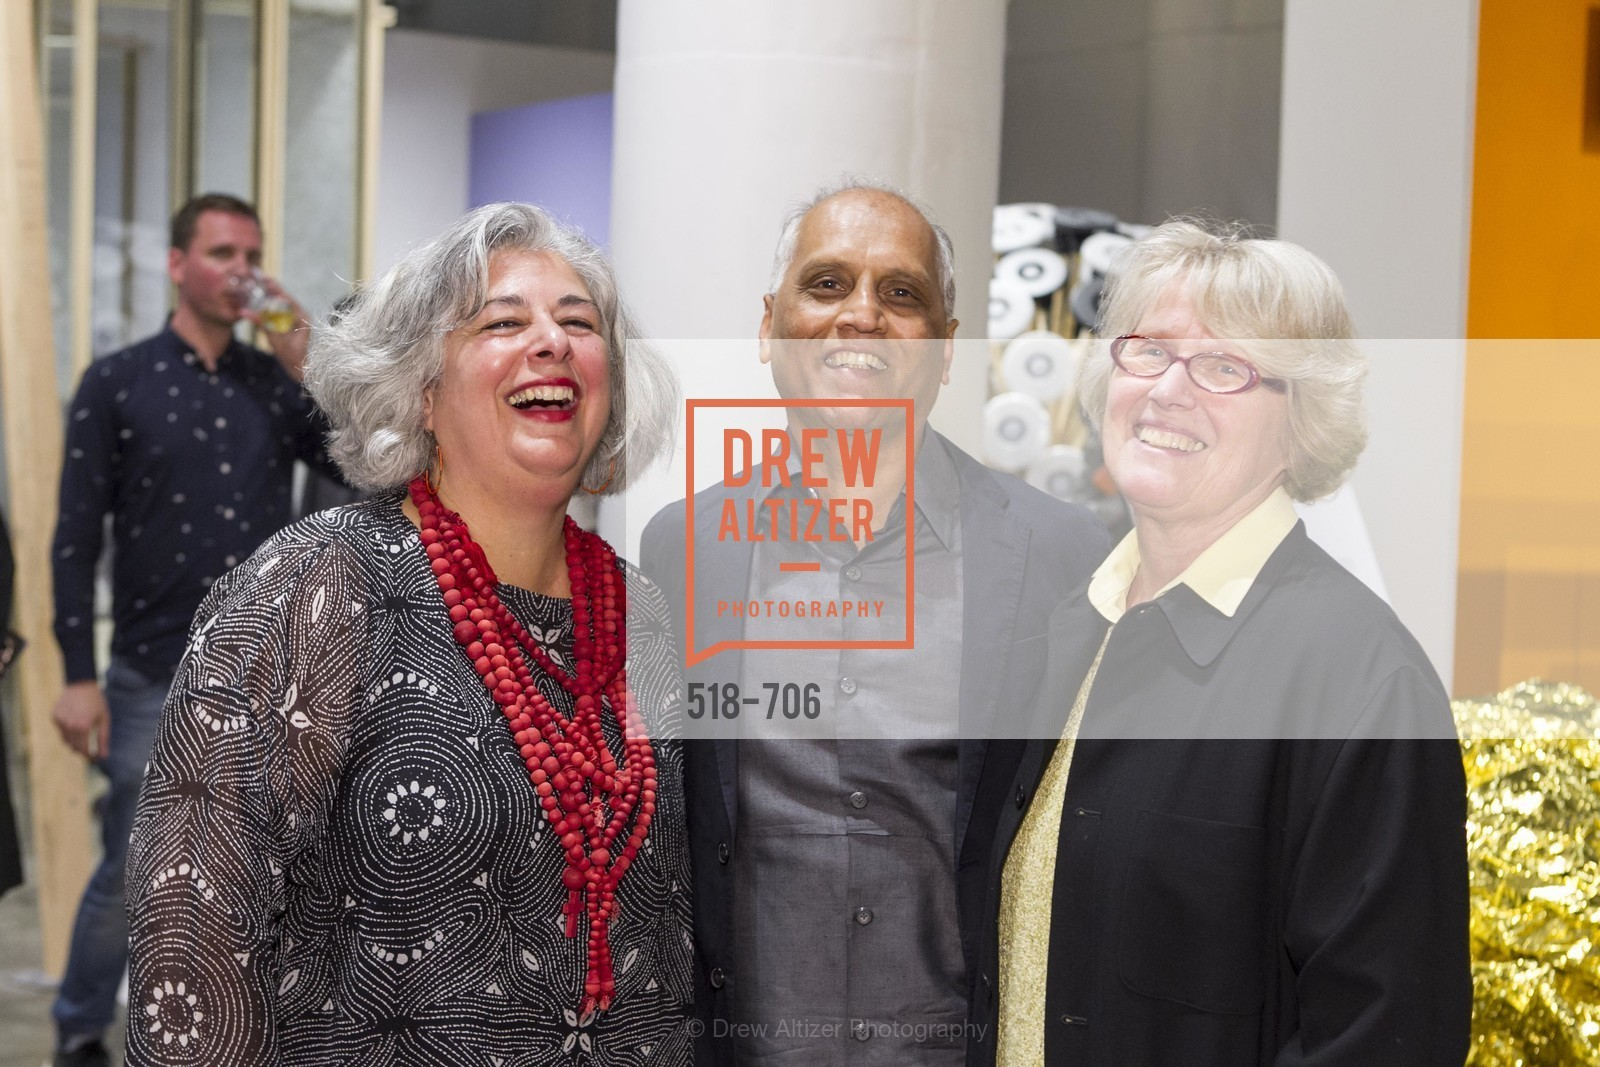 JoAnn Edwards, Zahid Sardar, Agnes Bourne, Exhibit Opening at the MUSEUM OF CRAFT AND DESIGN - Hands Off: New Dutch Design at the Confluence of Technology & Craft, US, May 8th, 2015,Drew Altizer, Drew Altizer Photography, full-service agency, private events, San Francisco photographer, photographer california